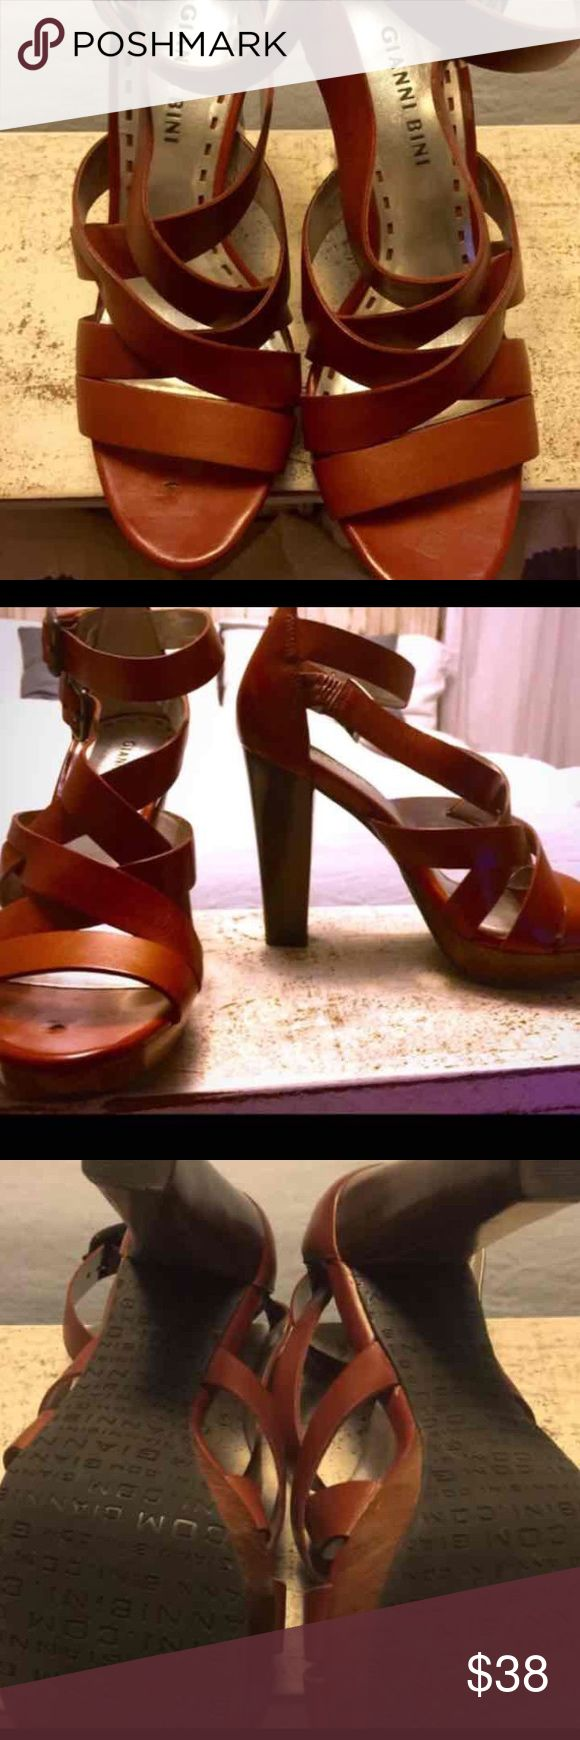 New Sz 6.5 Gianni bini Cognac Brown Strappy Heels Cognac Brown Strappy Gianni bini Heels Size 6.5 These are new but they have a small gouge as seen in picture. It is covered up while wearing them though. Gianni Bini Shoes Sandals